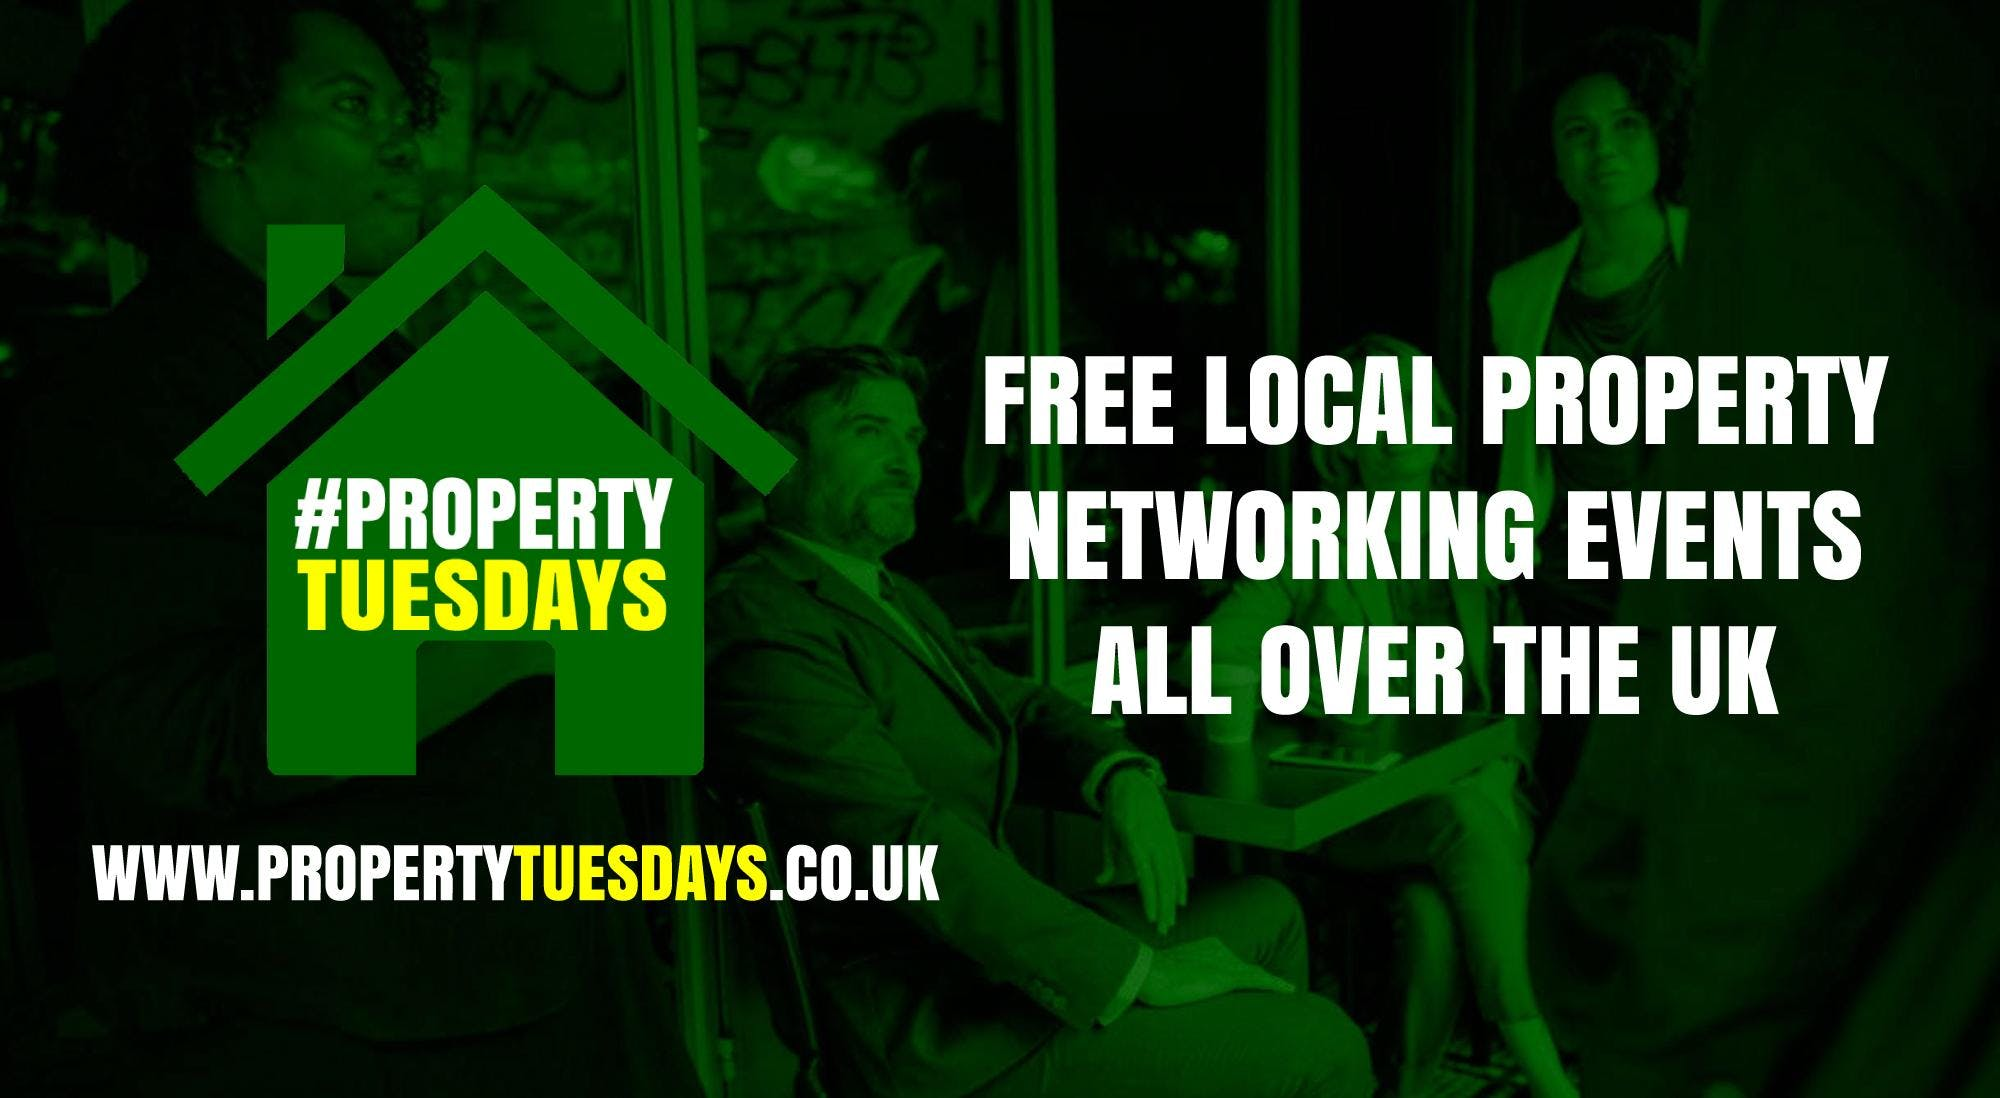 Property Tuesdays! Free property networking event in Sheffield